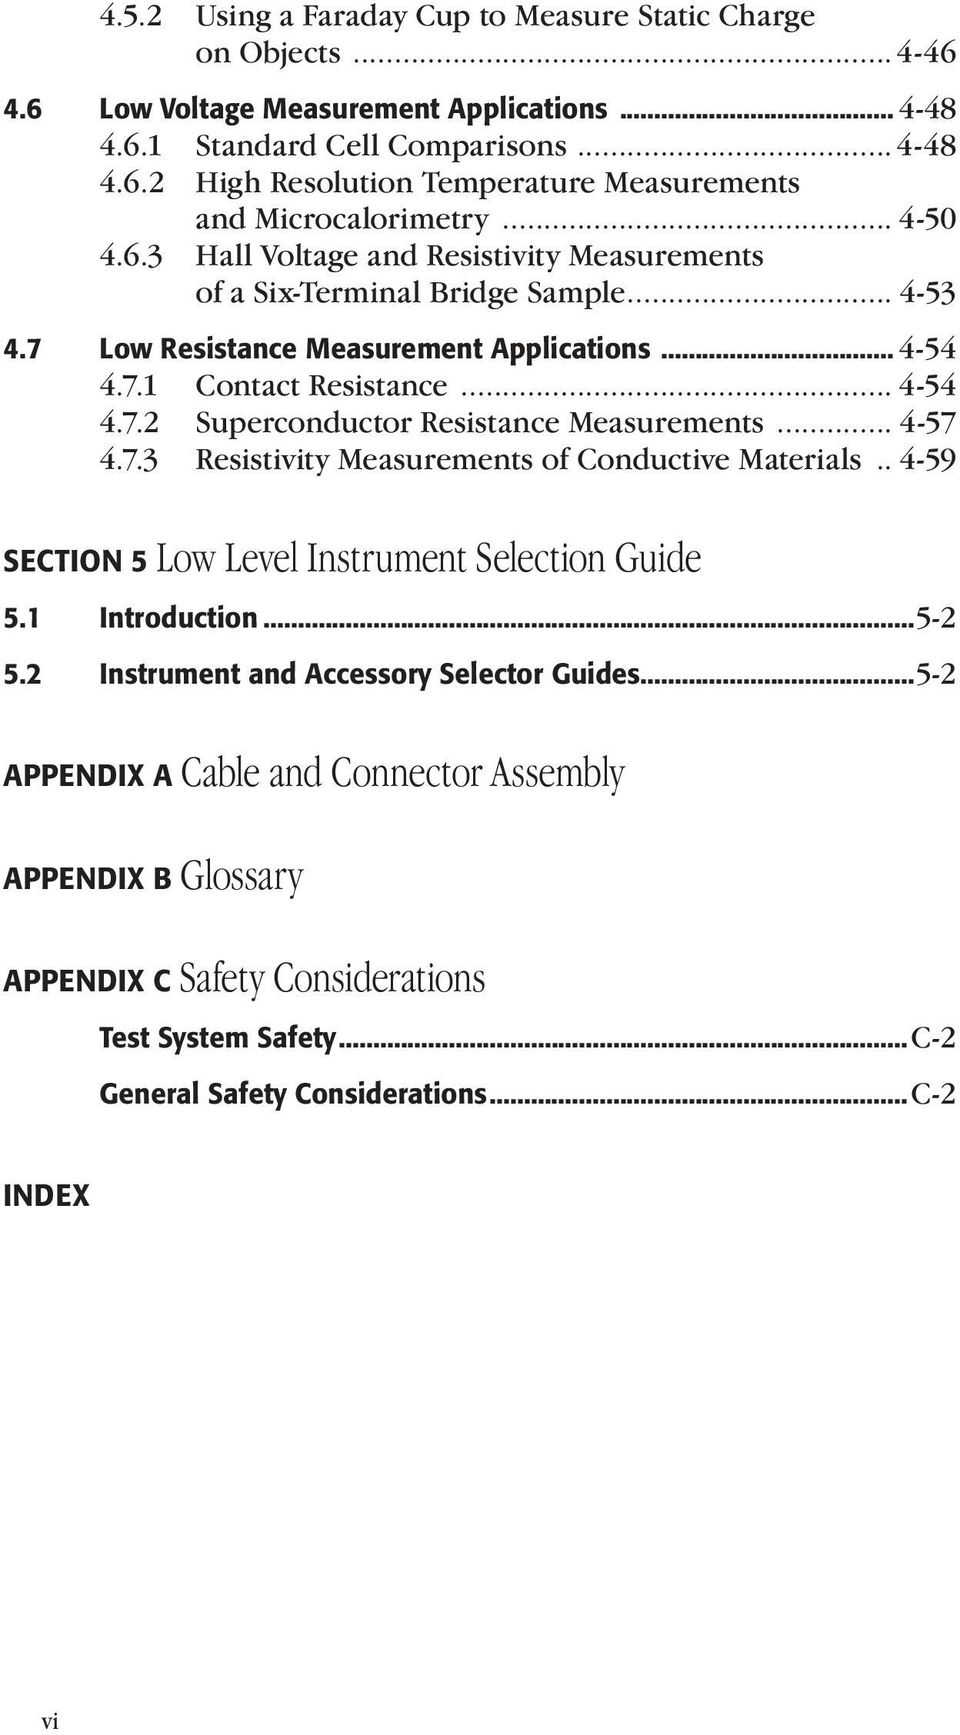 .. 4-57 4.7.3 Resistivity Measurements of Conductive Materials... 4-59 SECTION 5 Low Level Instrument Selection Guide 5.1 Introduction...5-2 5.2 Instrument and Accessory Selector Guides.